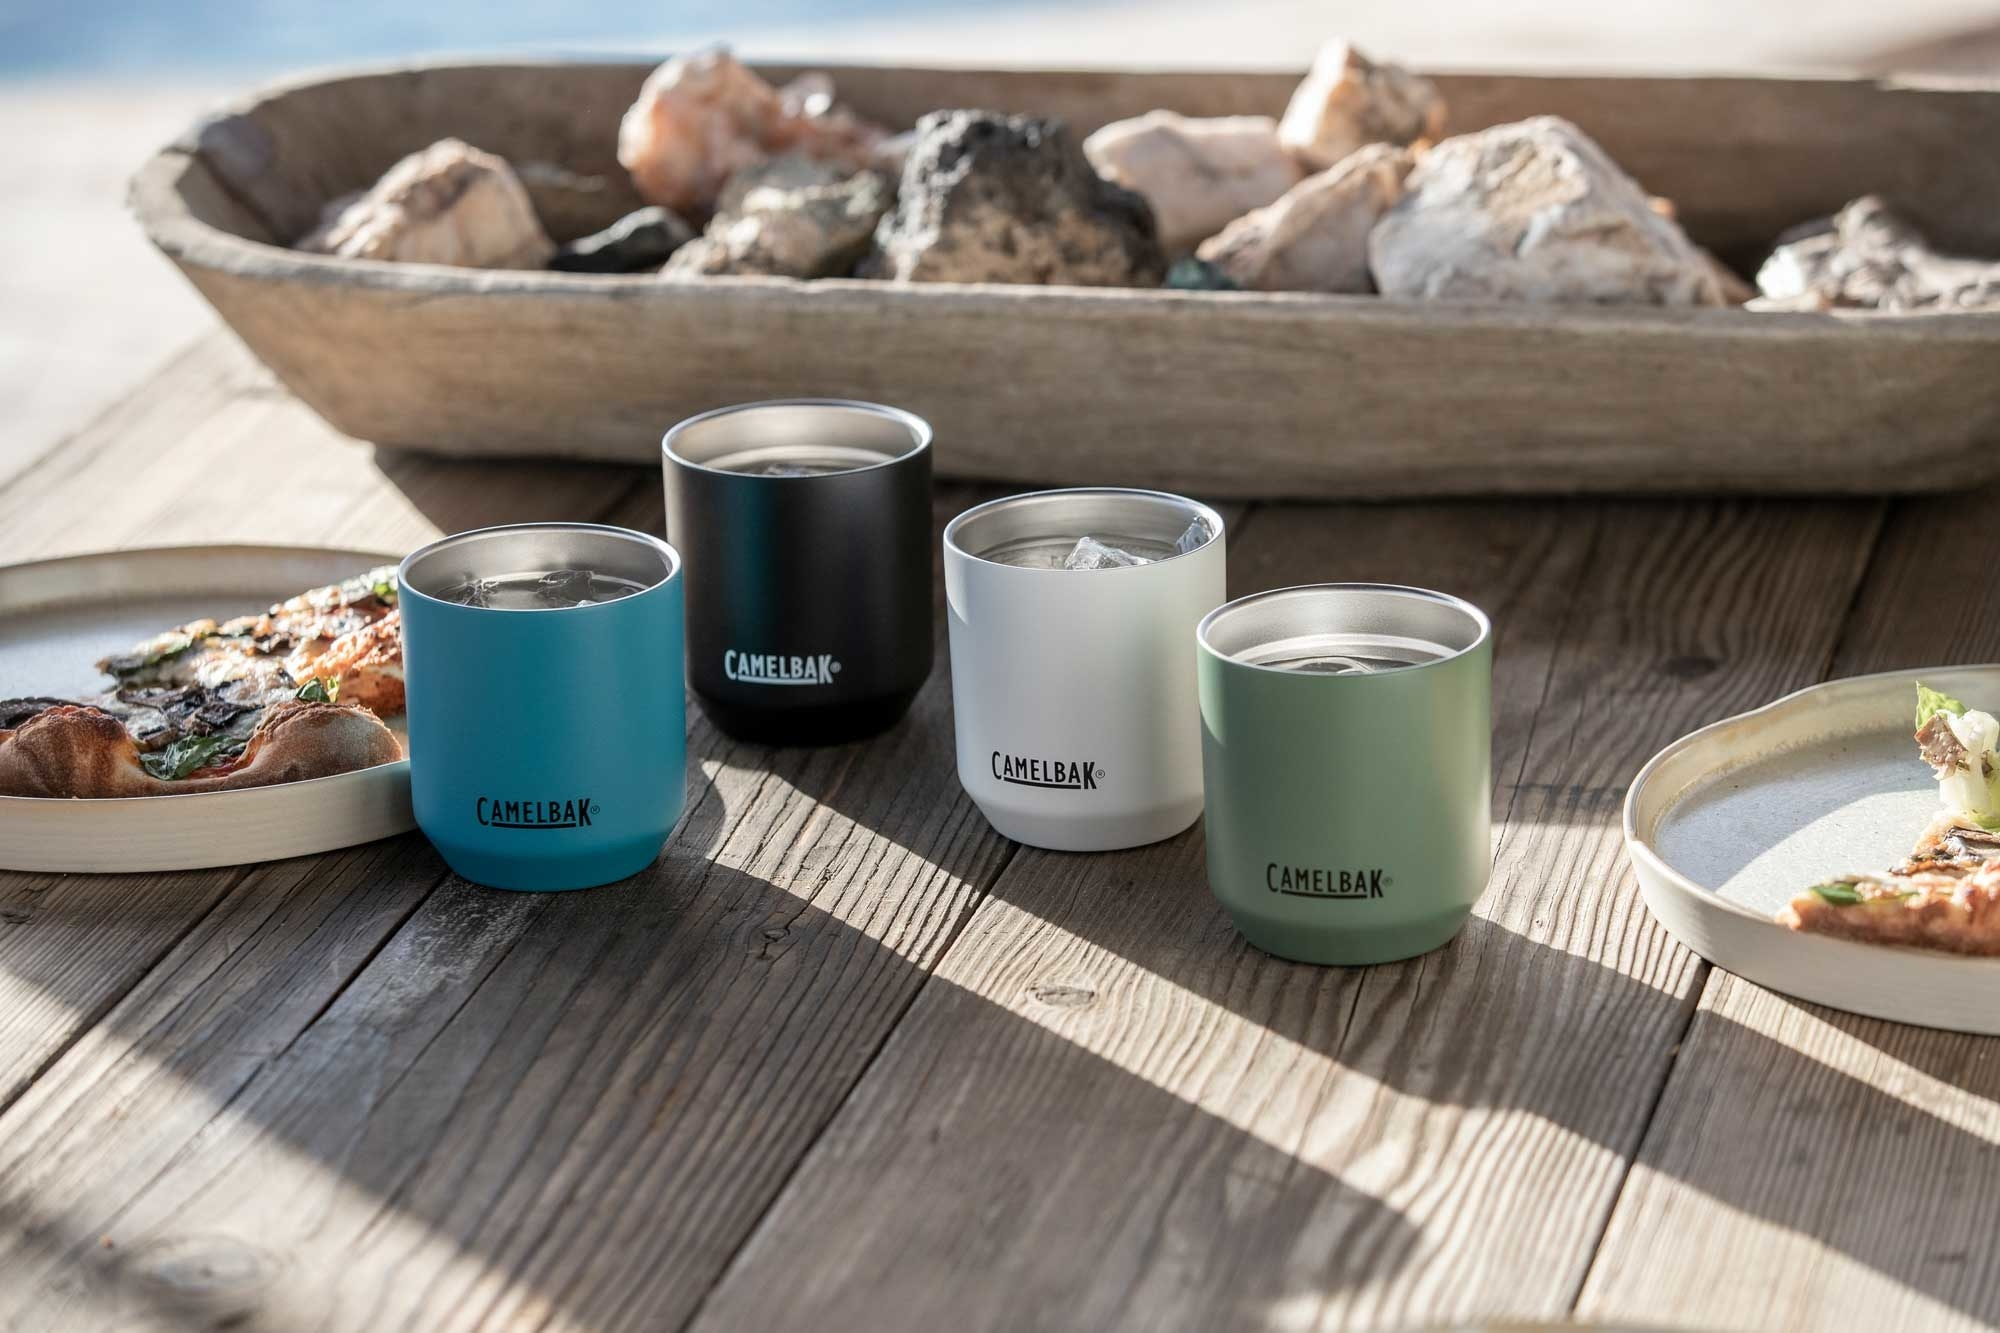 Four of the stainless steel tumblers in different colors: blue, black, white, and green